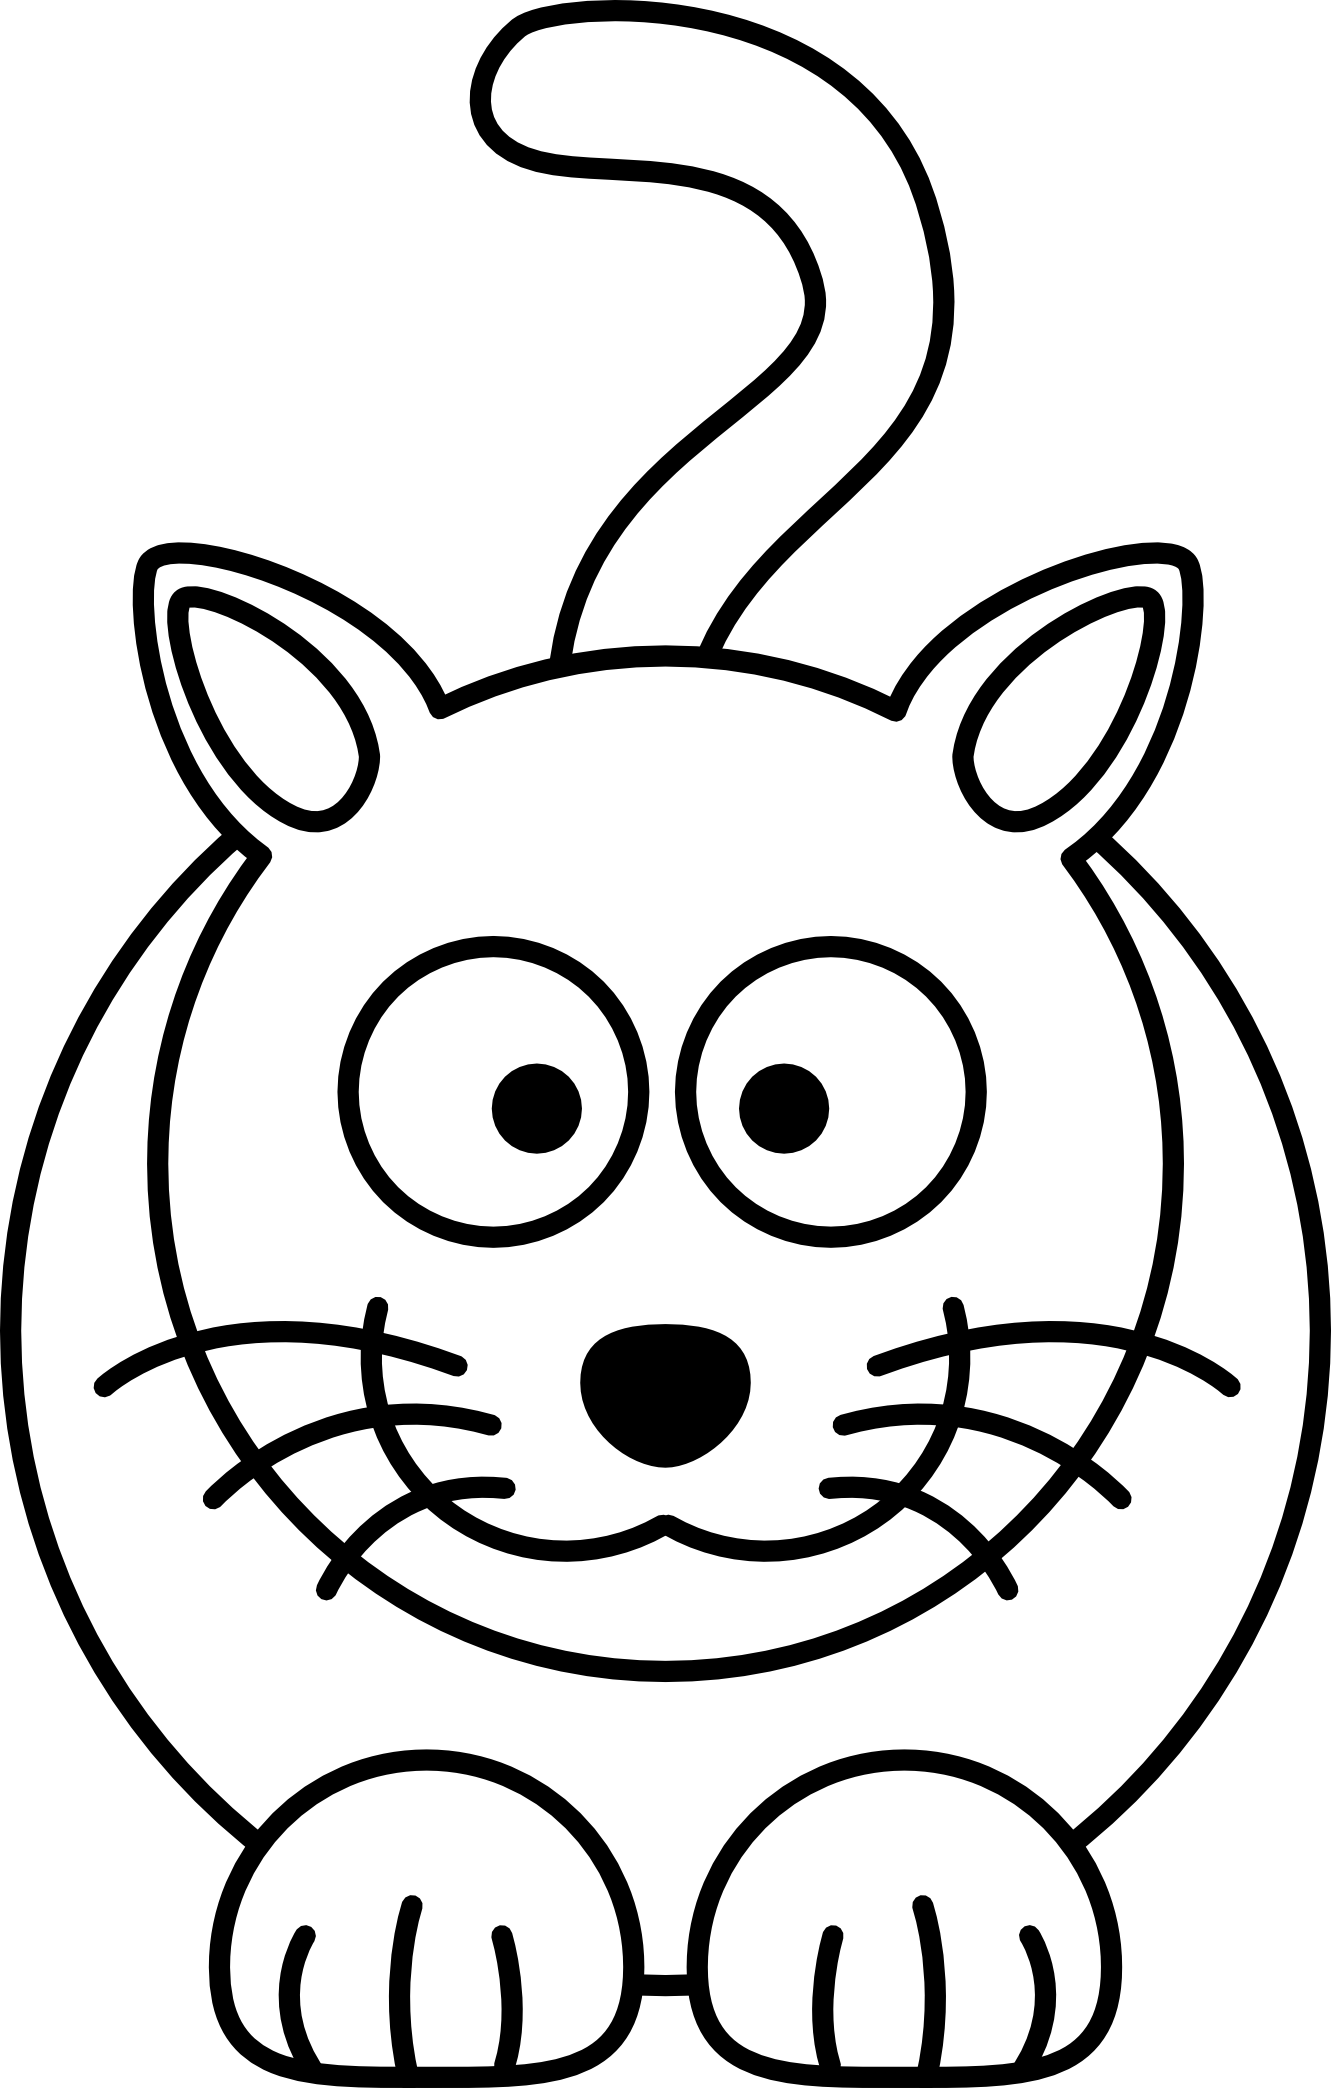 Lemmling Cartoon Cat Black White Line Art Coloring ...